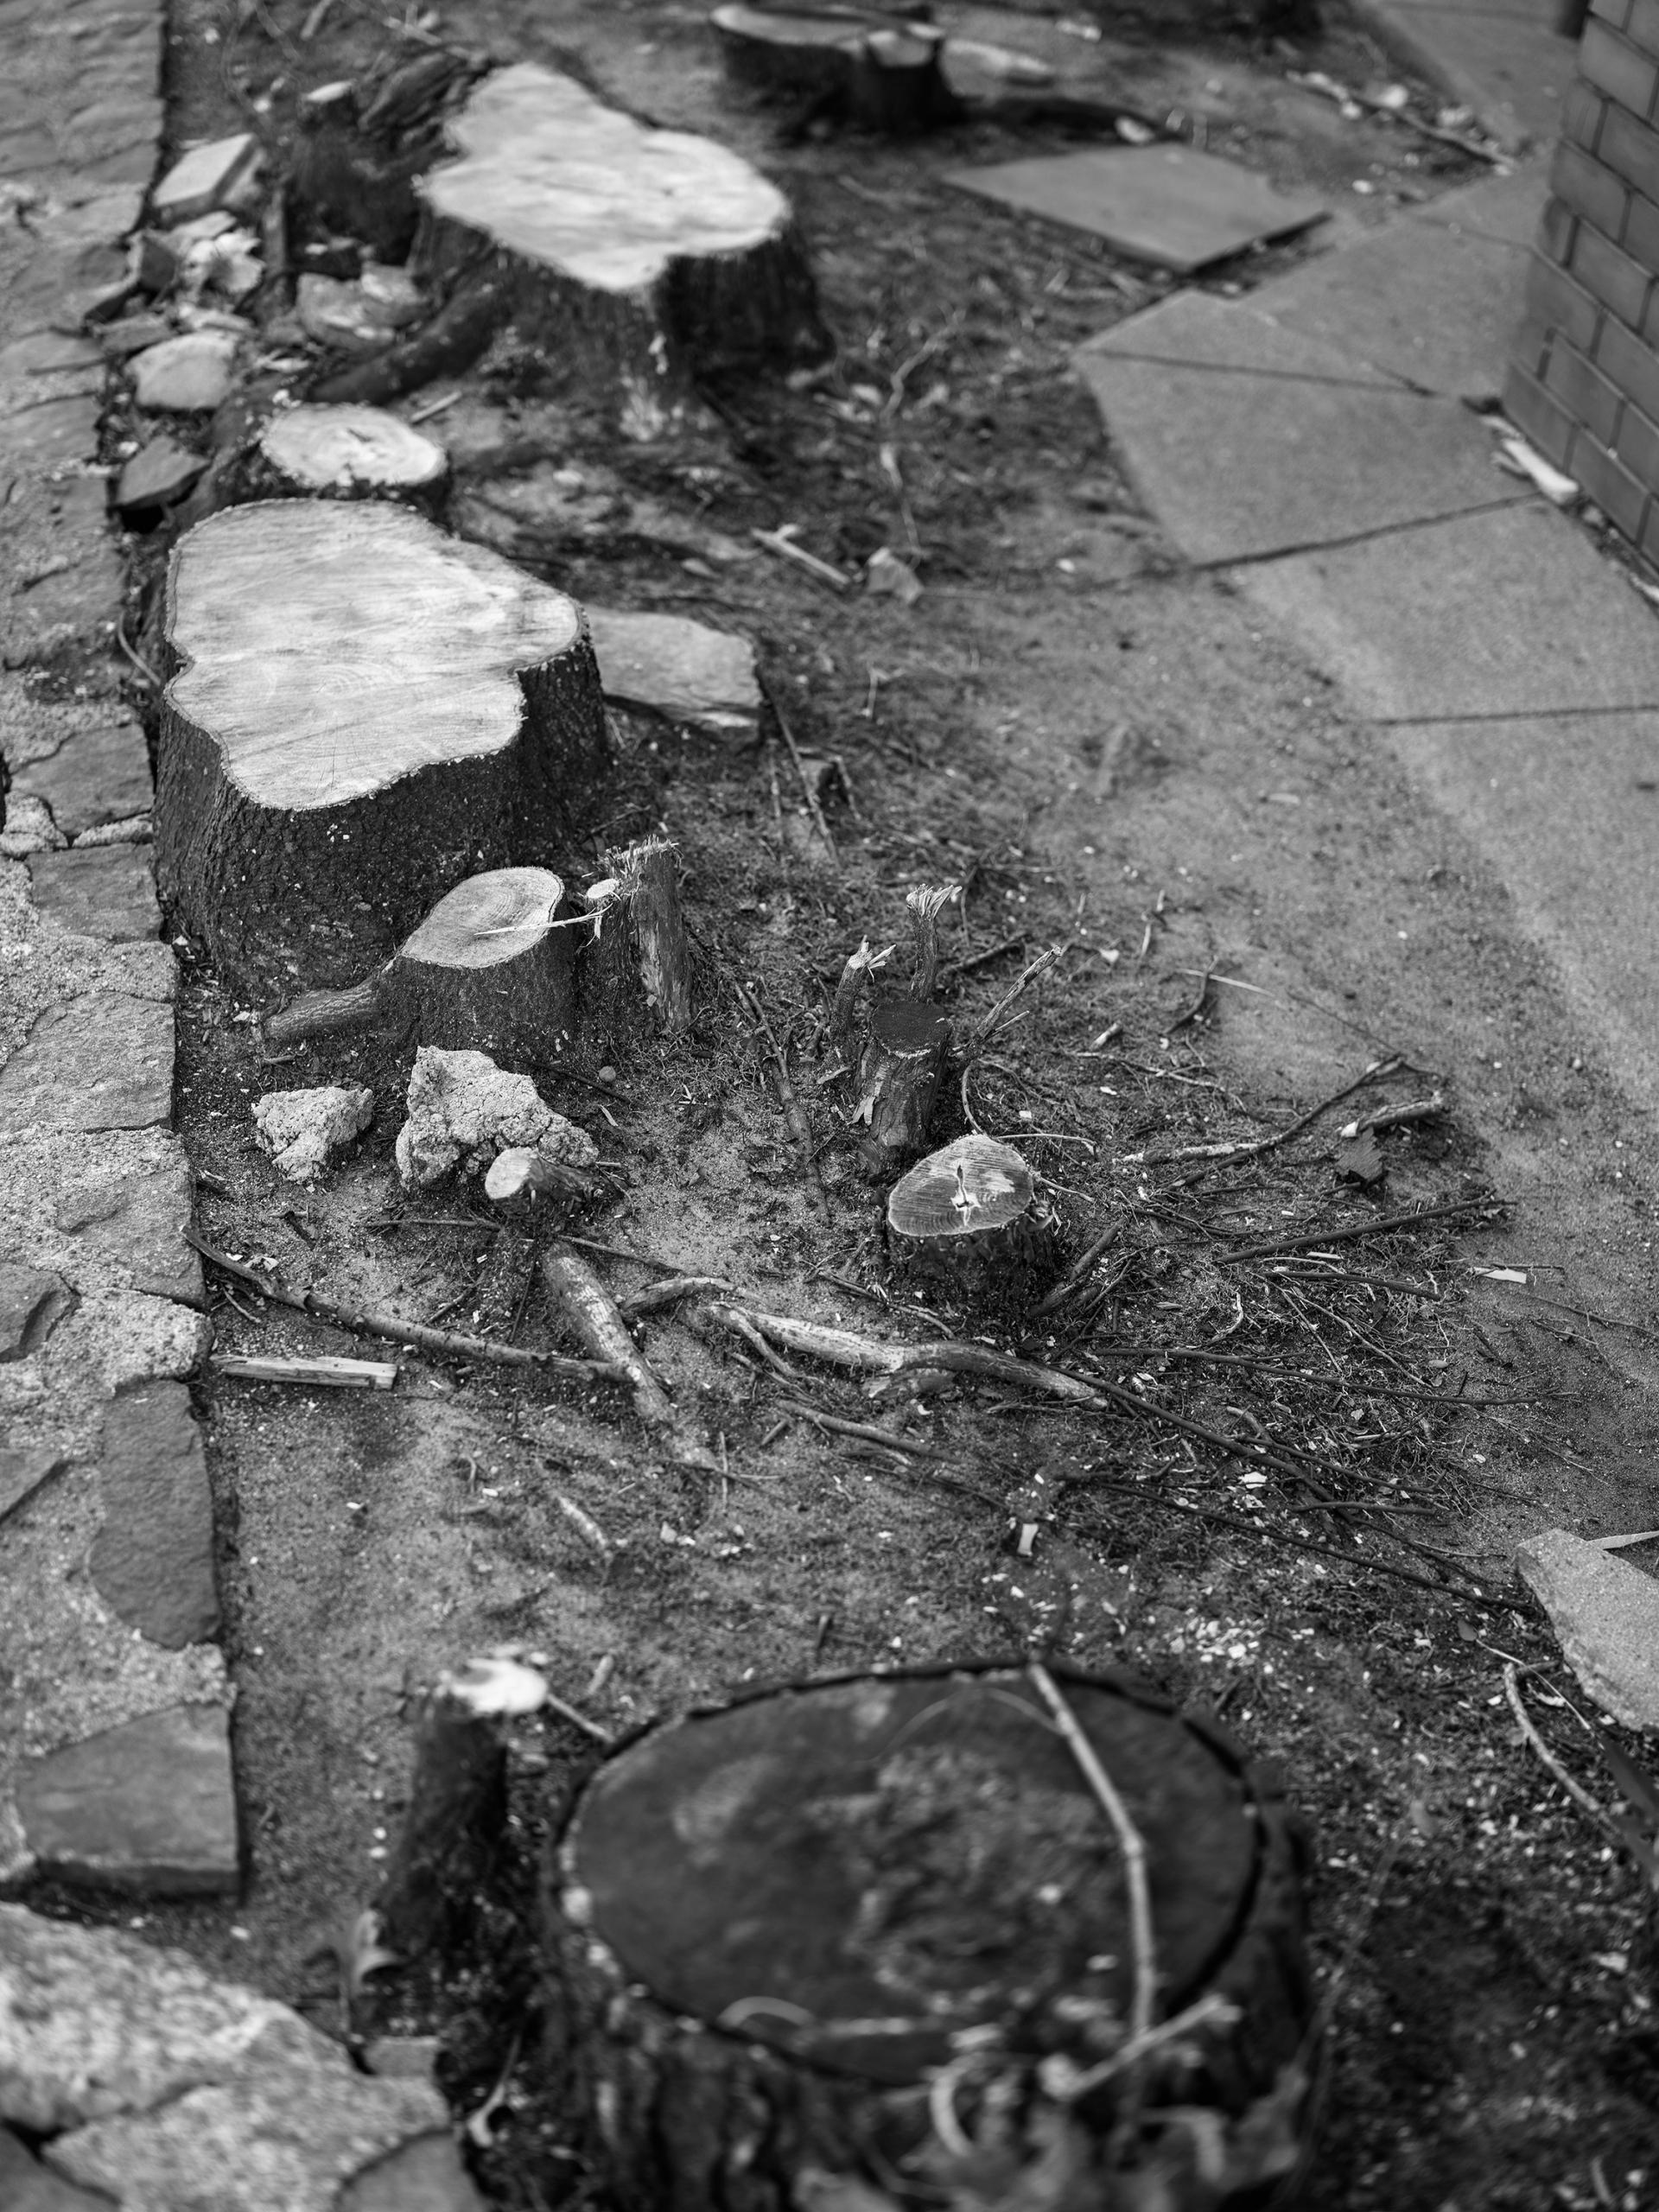 A black and white photograph of stumps running alongside a narrow cement path. The stump closest to the foreground is black, indicating disease. The rest are white, as though freshly cut.